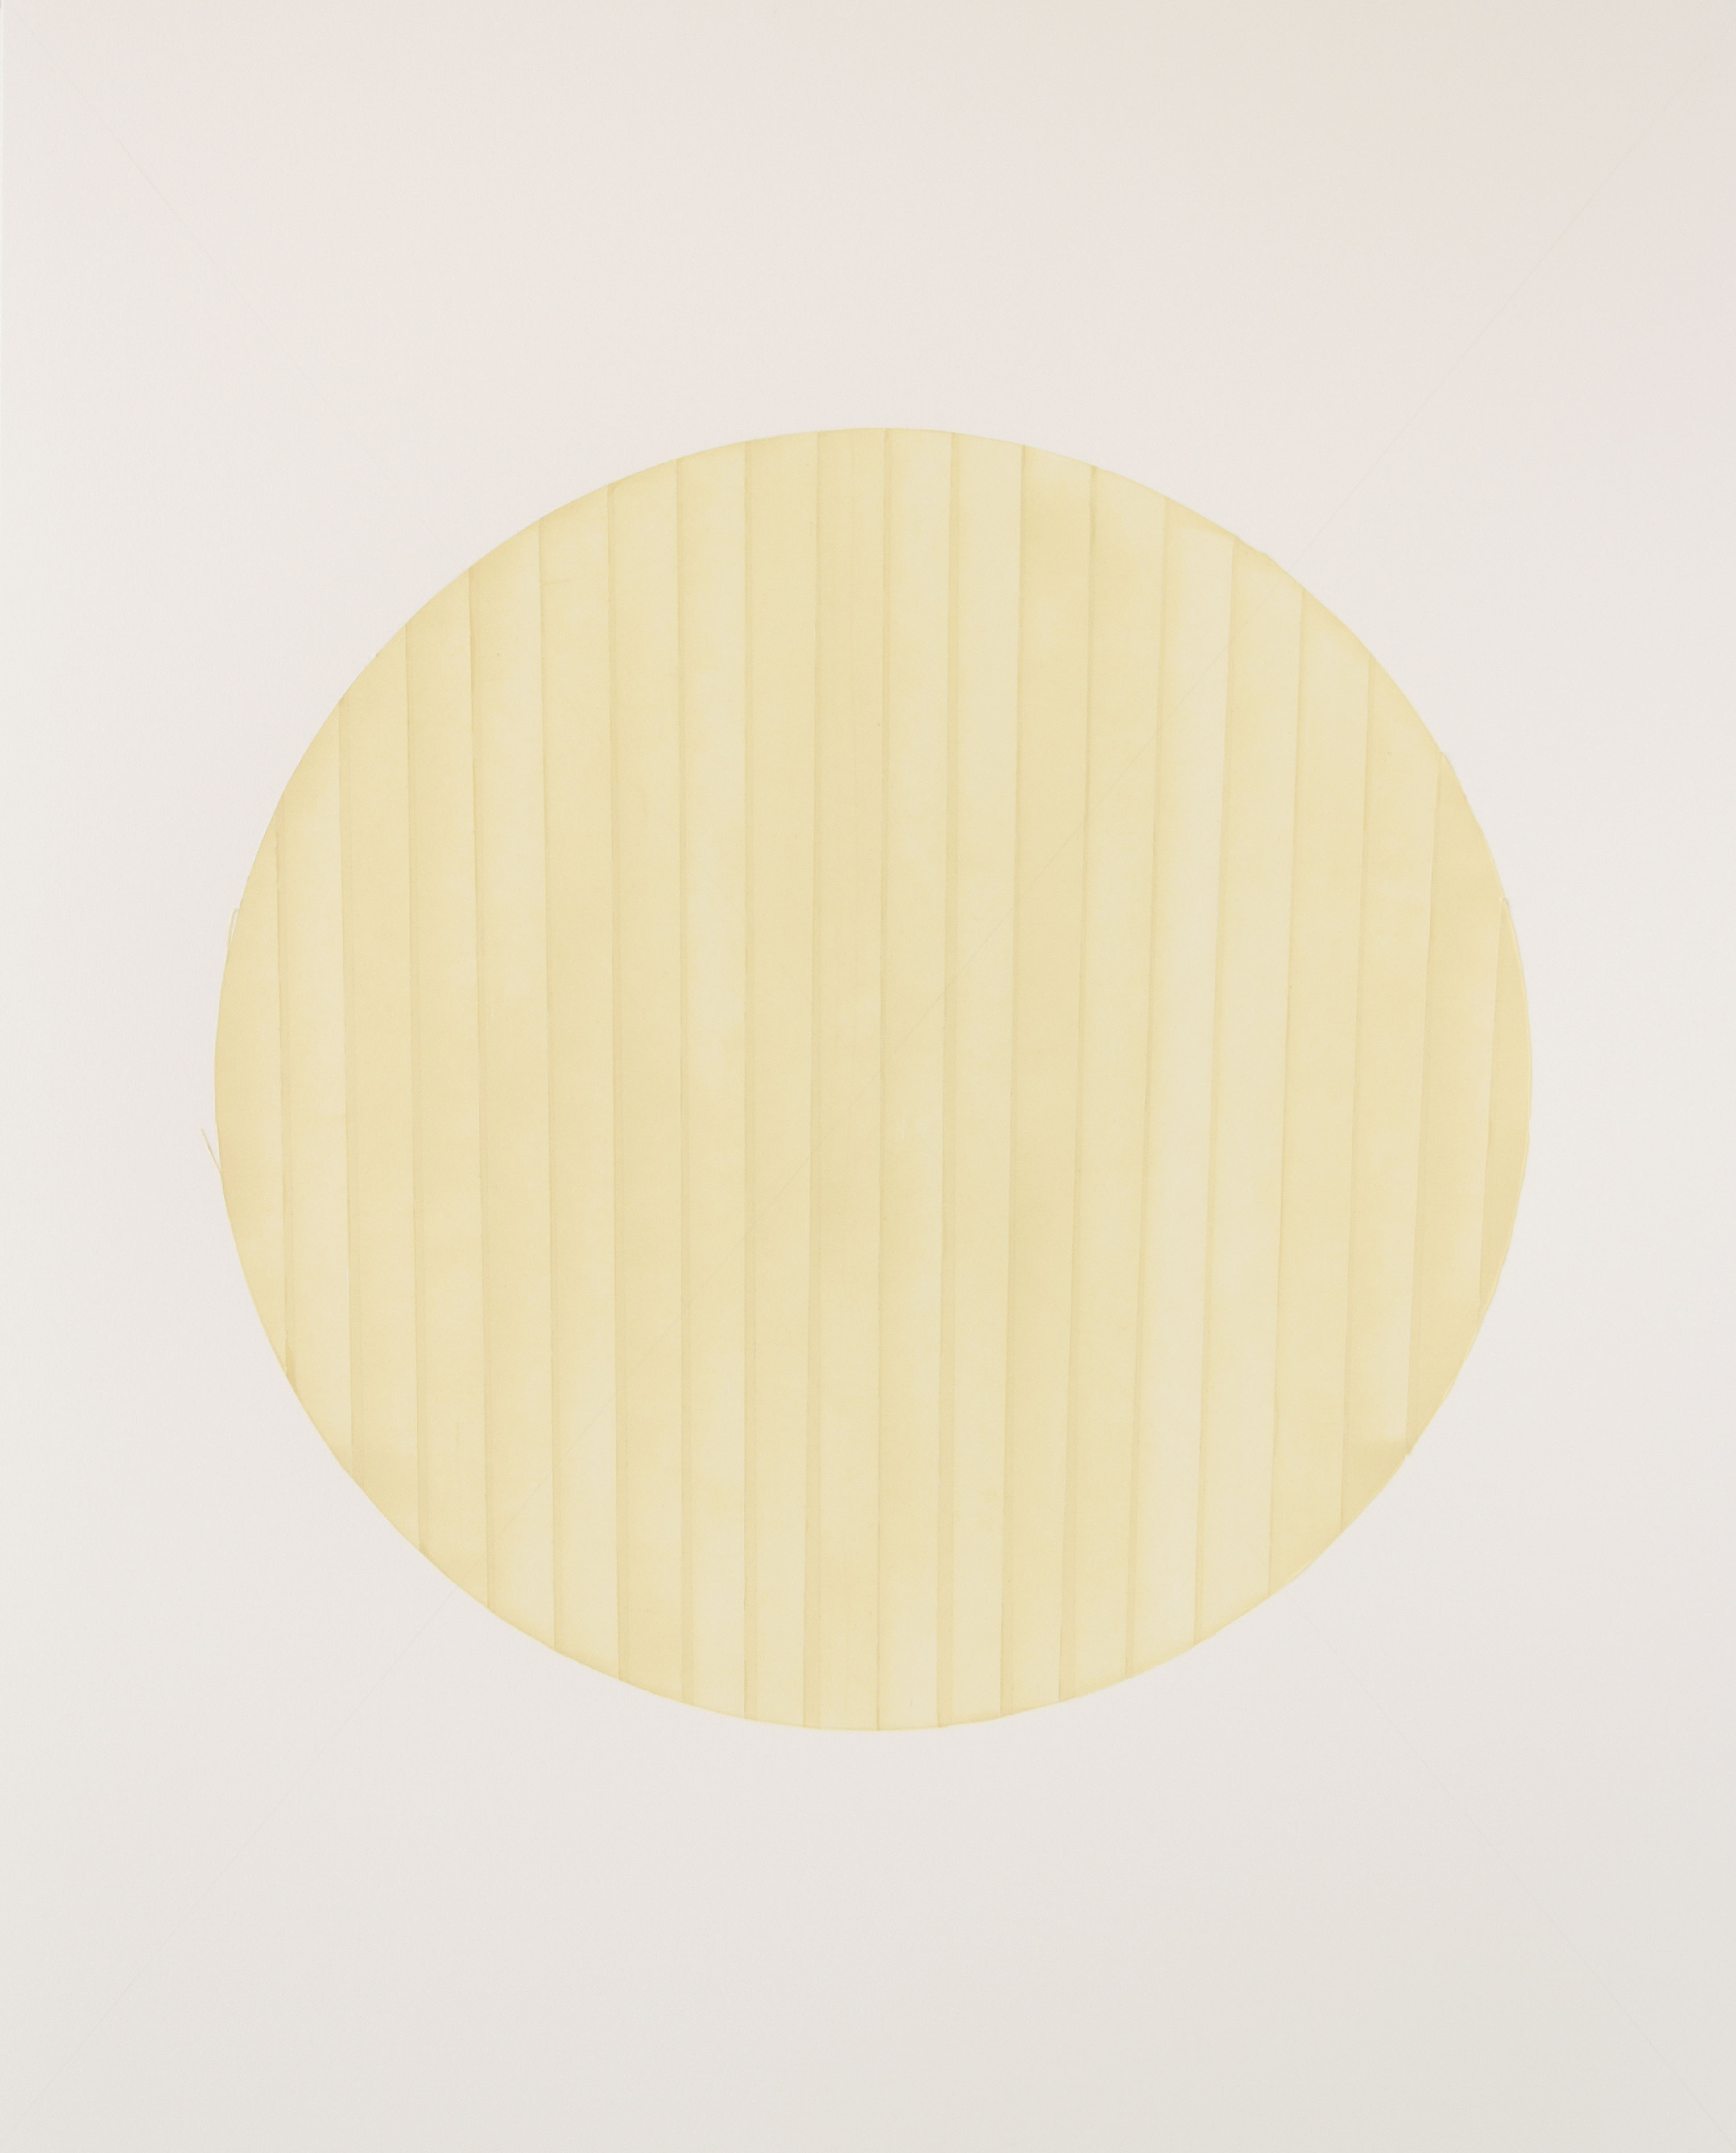 Tammi Campbell, from Circle Tape series (april 2012 B), 2012, acrylique sur carton musée, acrylic on museum board, 38